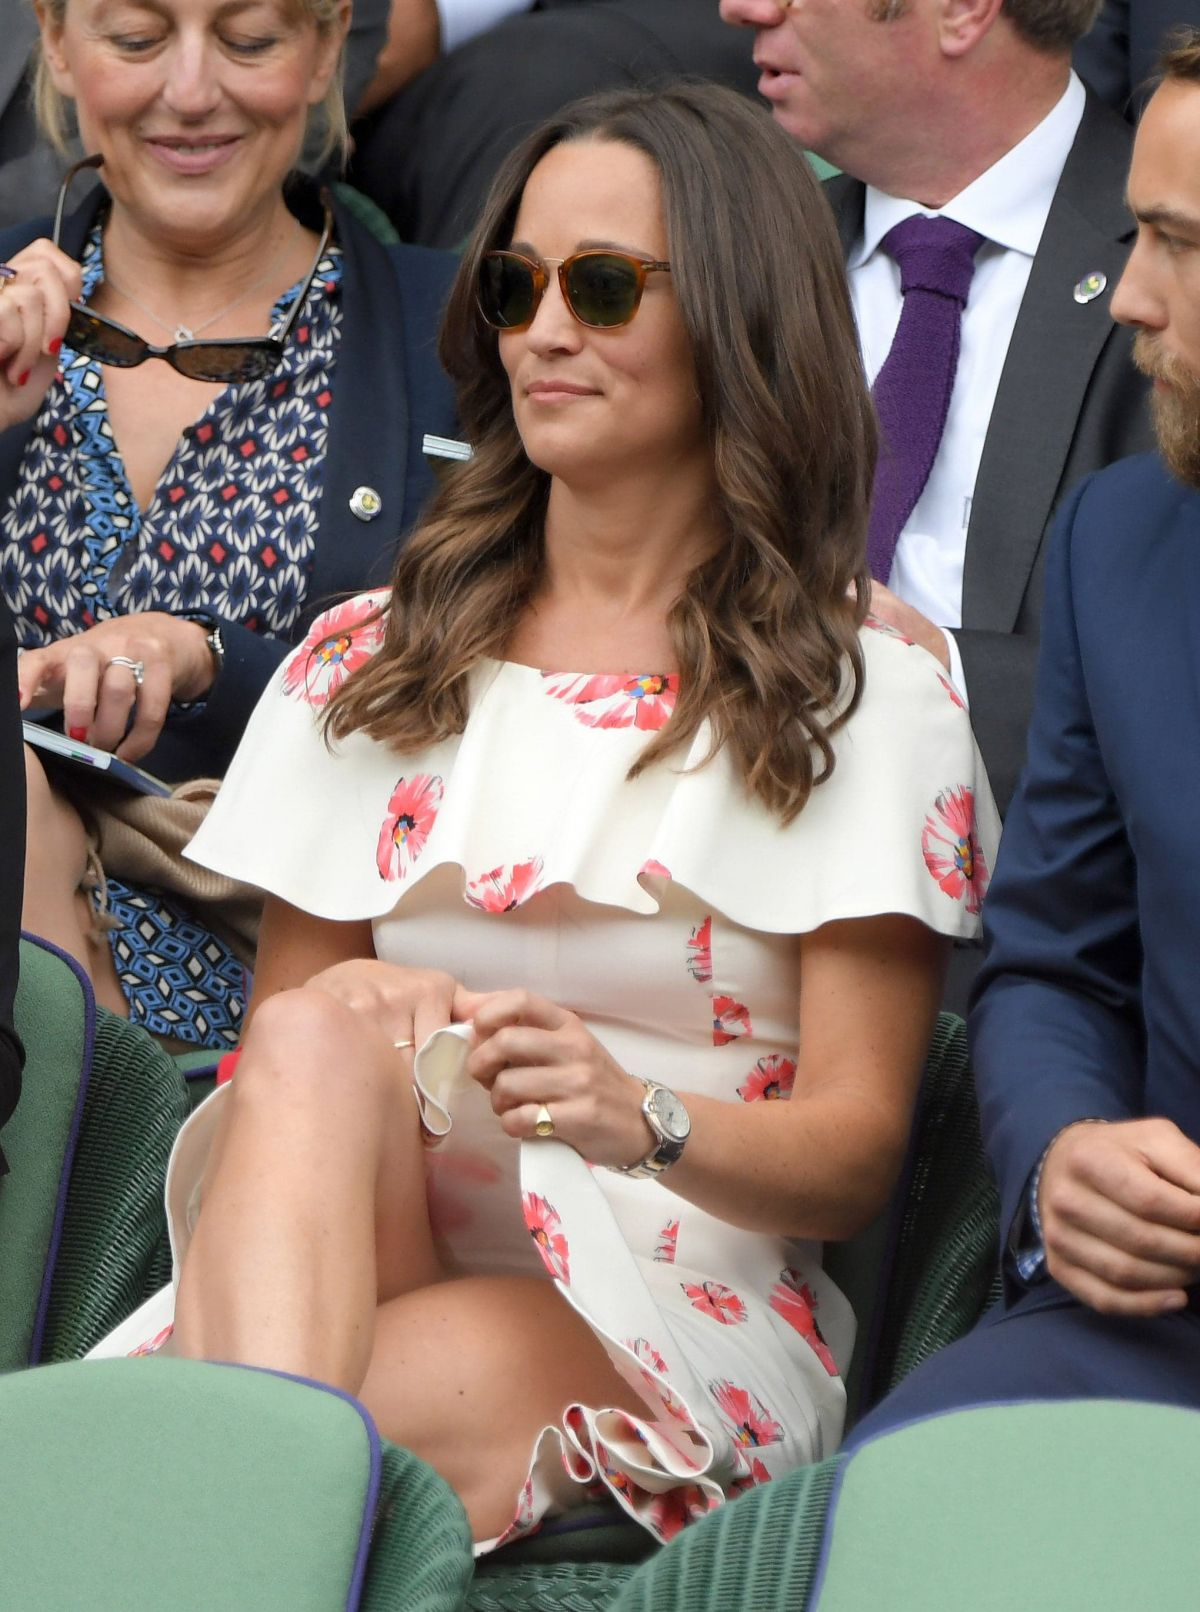 PIPPA MIDDLETON at Day One of Championships in Wimbledon 06/27/2016